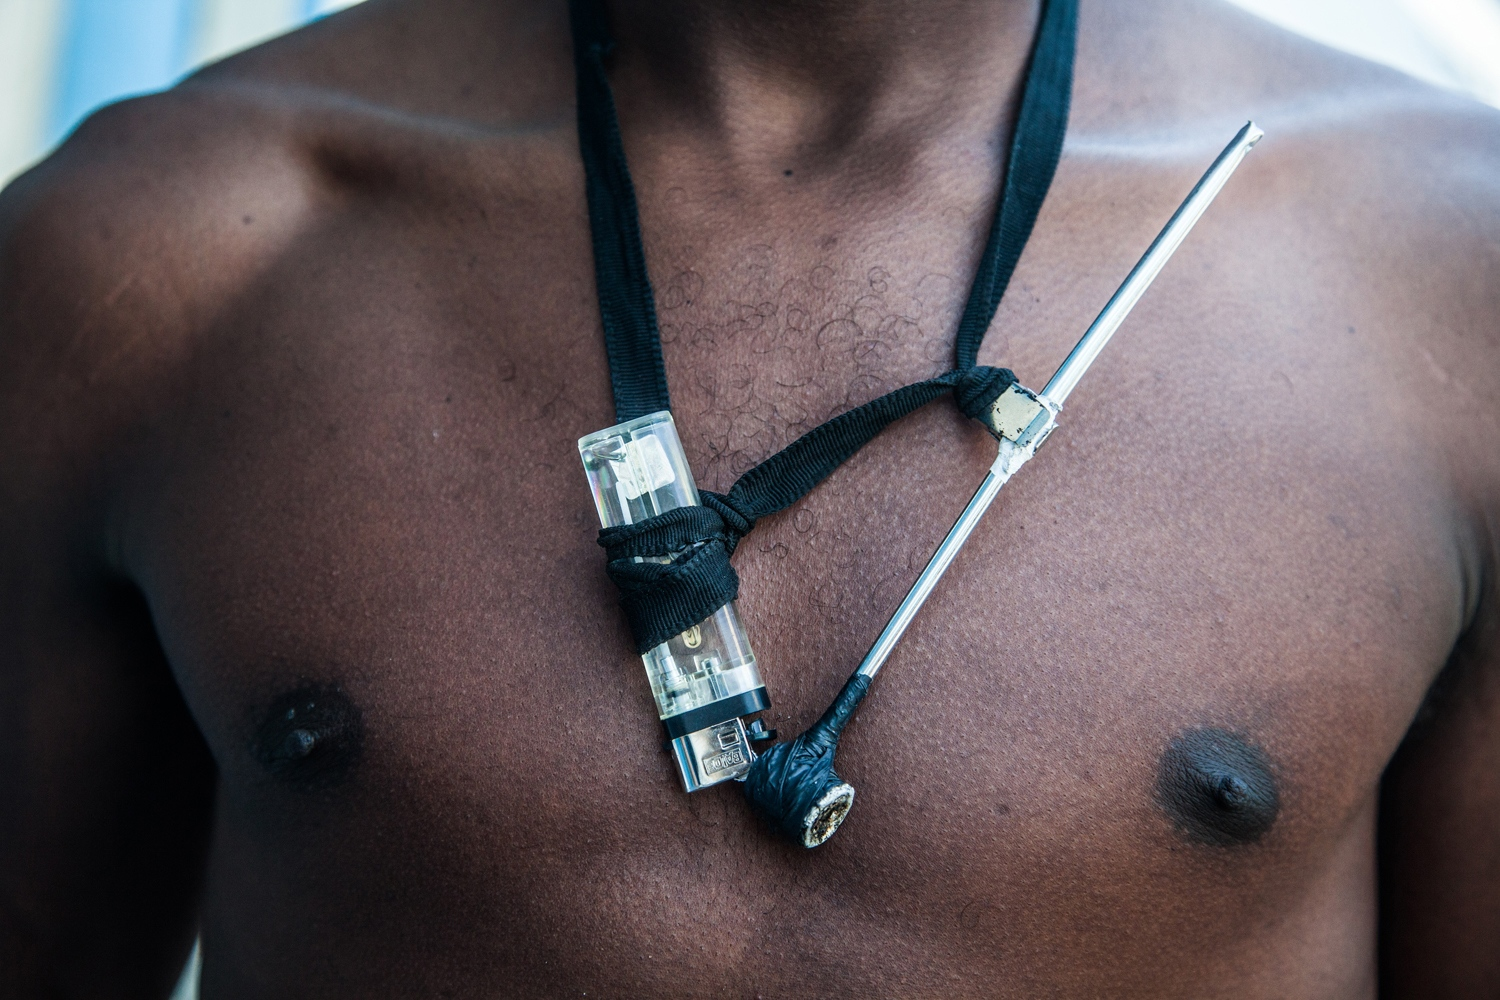 A crack addict stands with his crack pipe and lighter hung from his neck. Brazil has the dubious distinction of having the highest number of crack-cocaine users in the world, last estimated at one million people. Within Brazil, São Paulo's Cracolândia is highly symbolic of the country's drug epidemic.